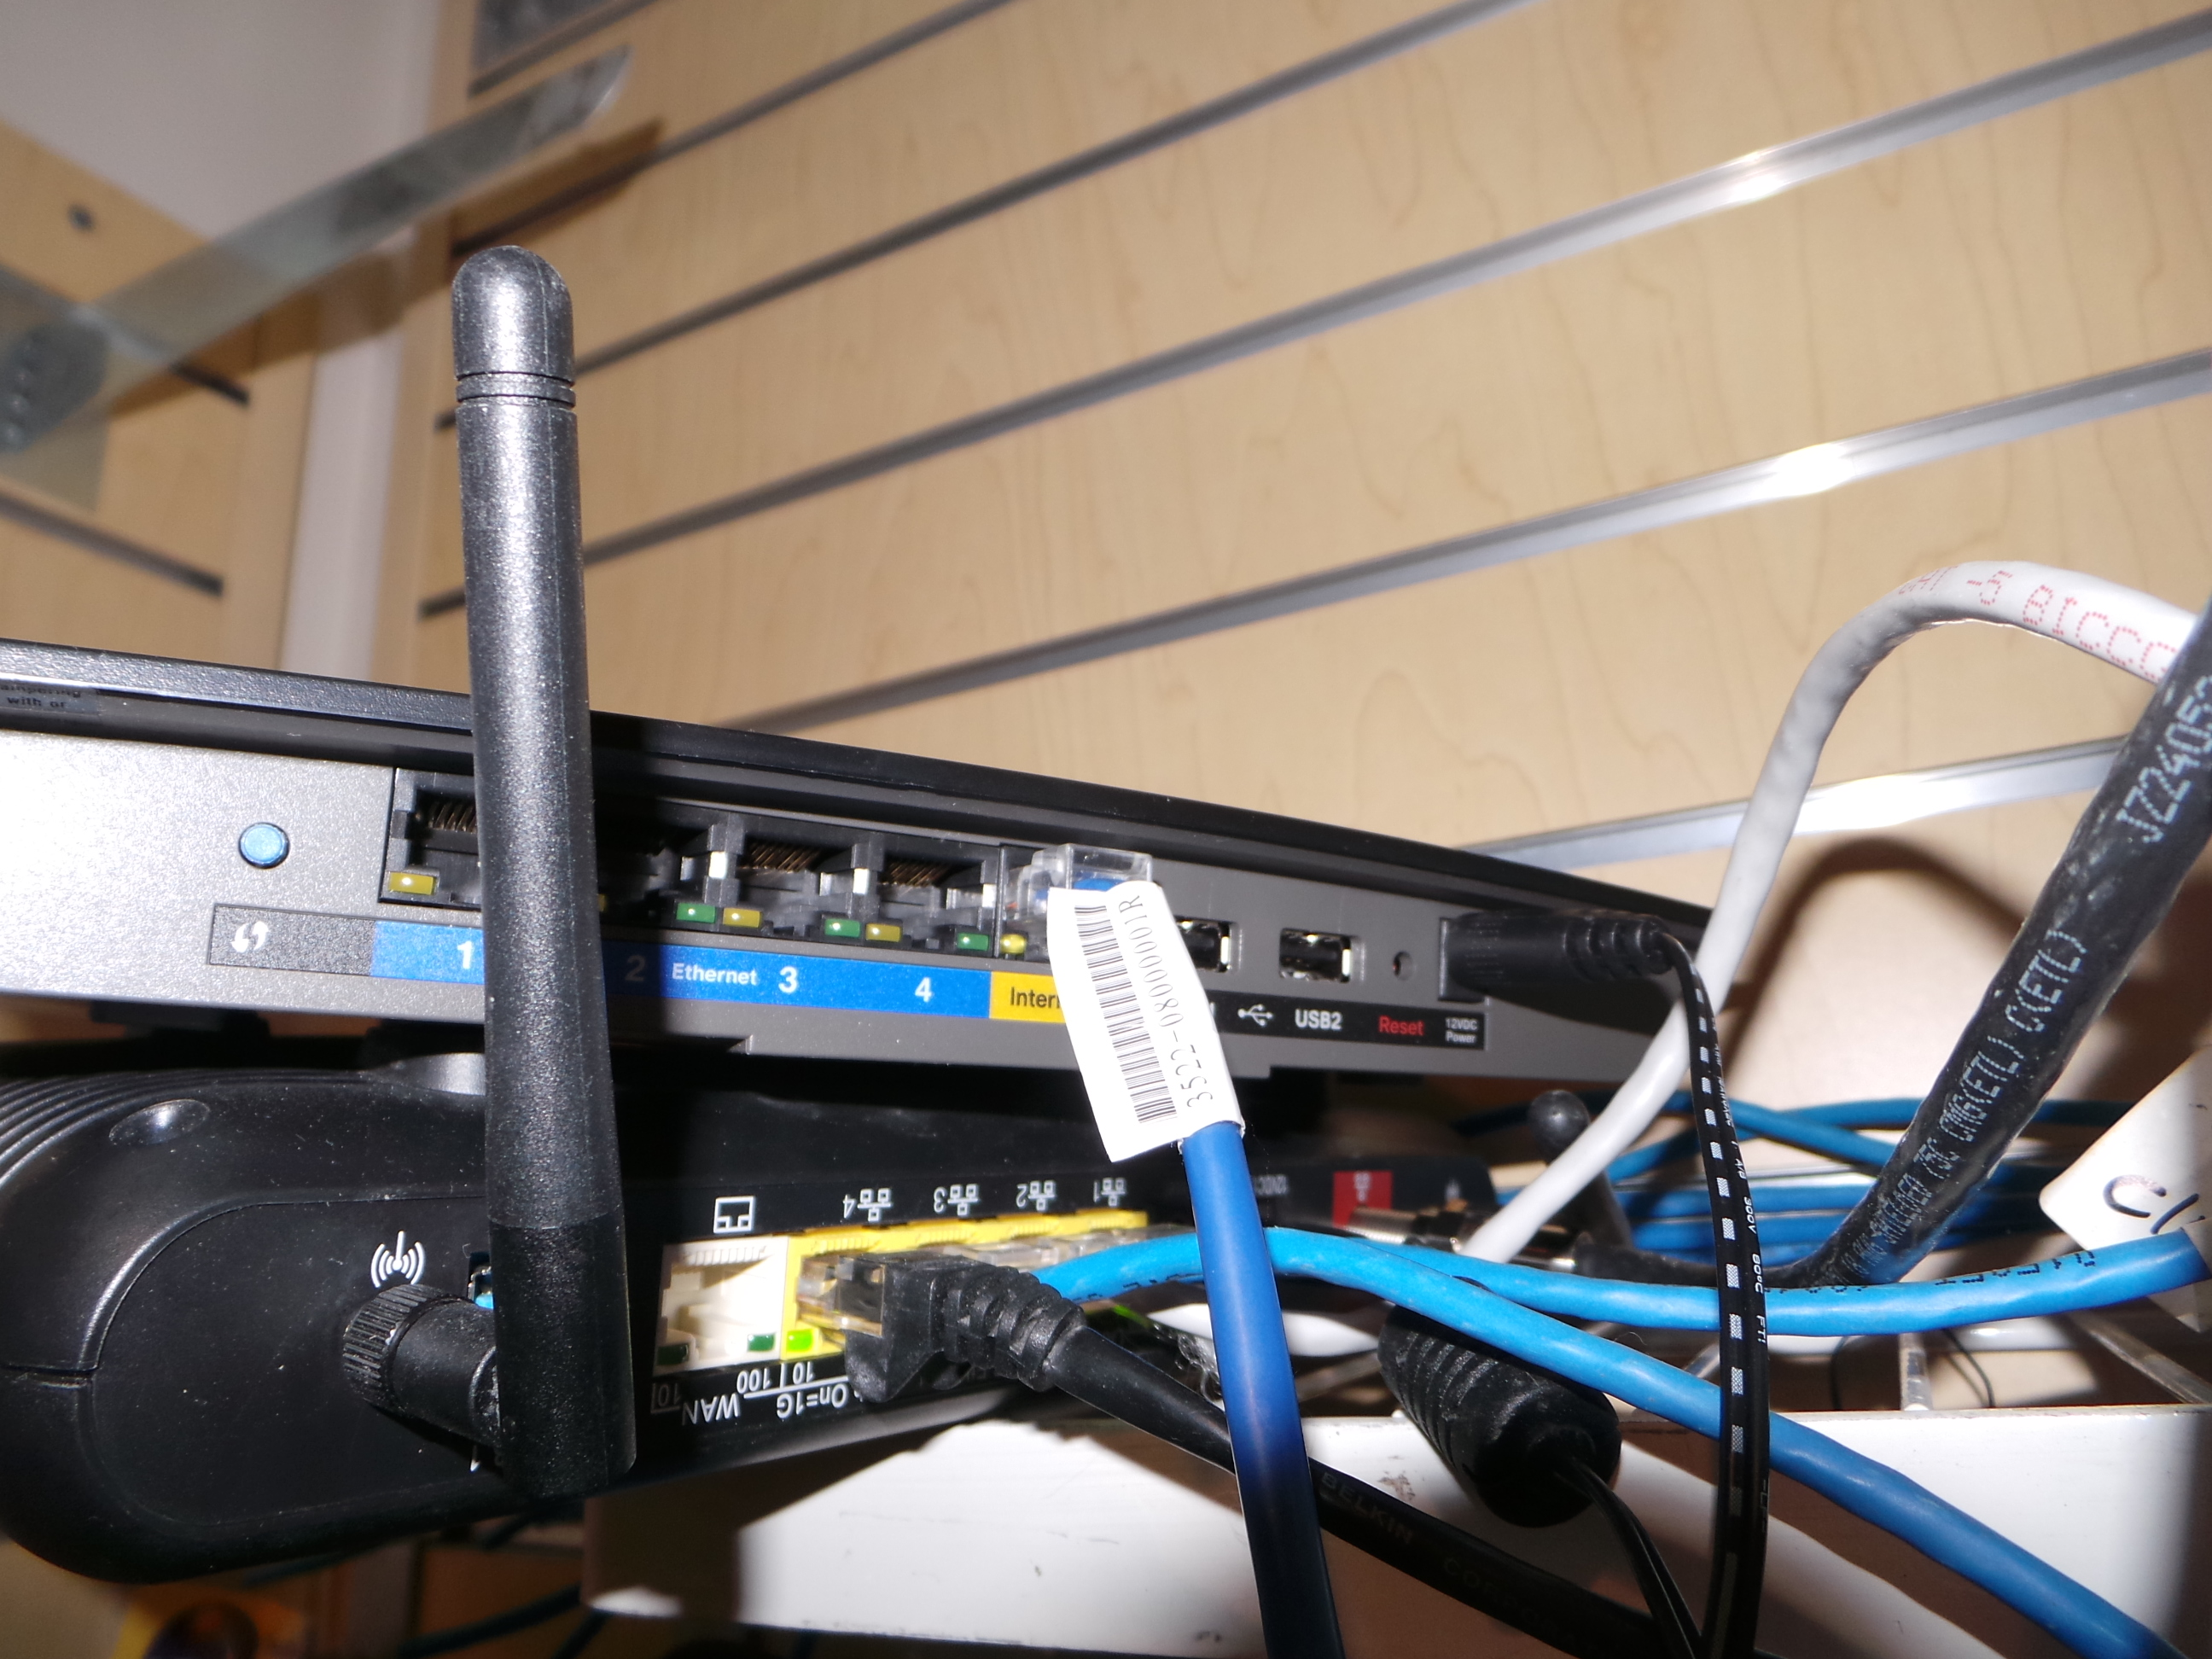 how to connect linksys router to internet